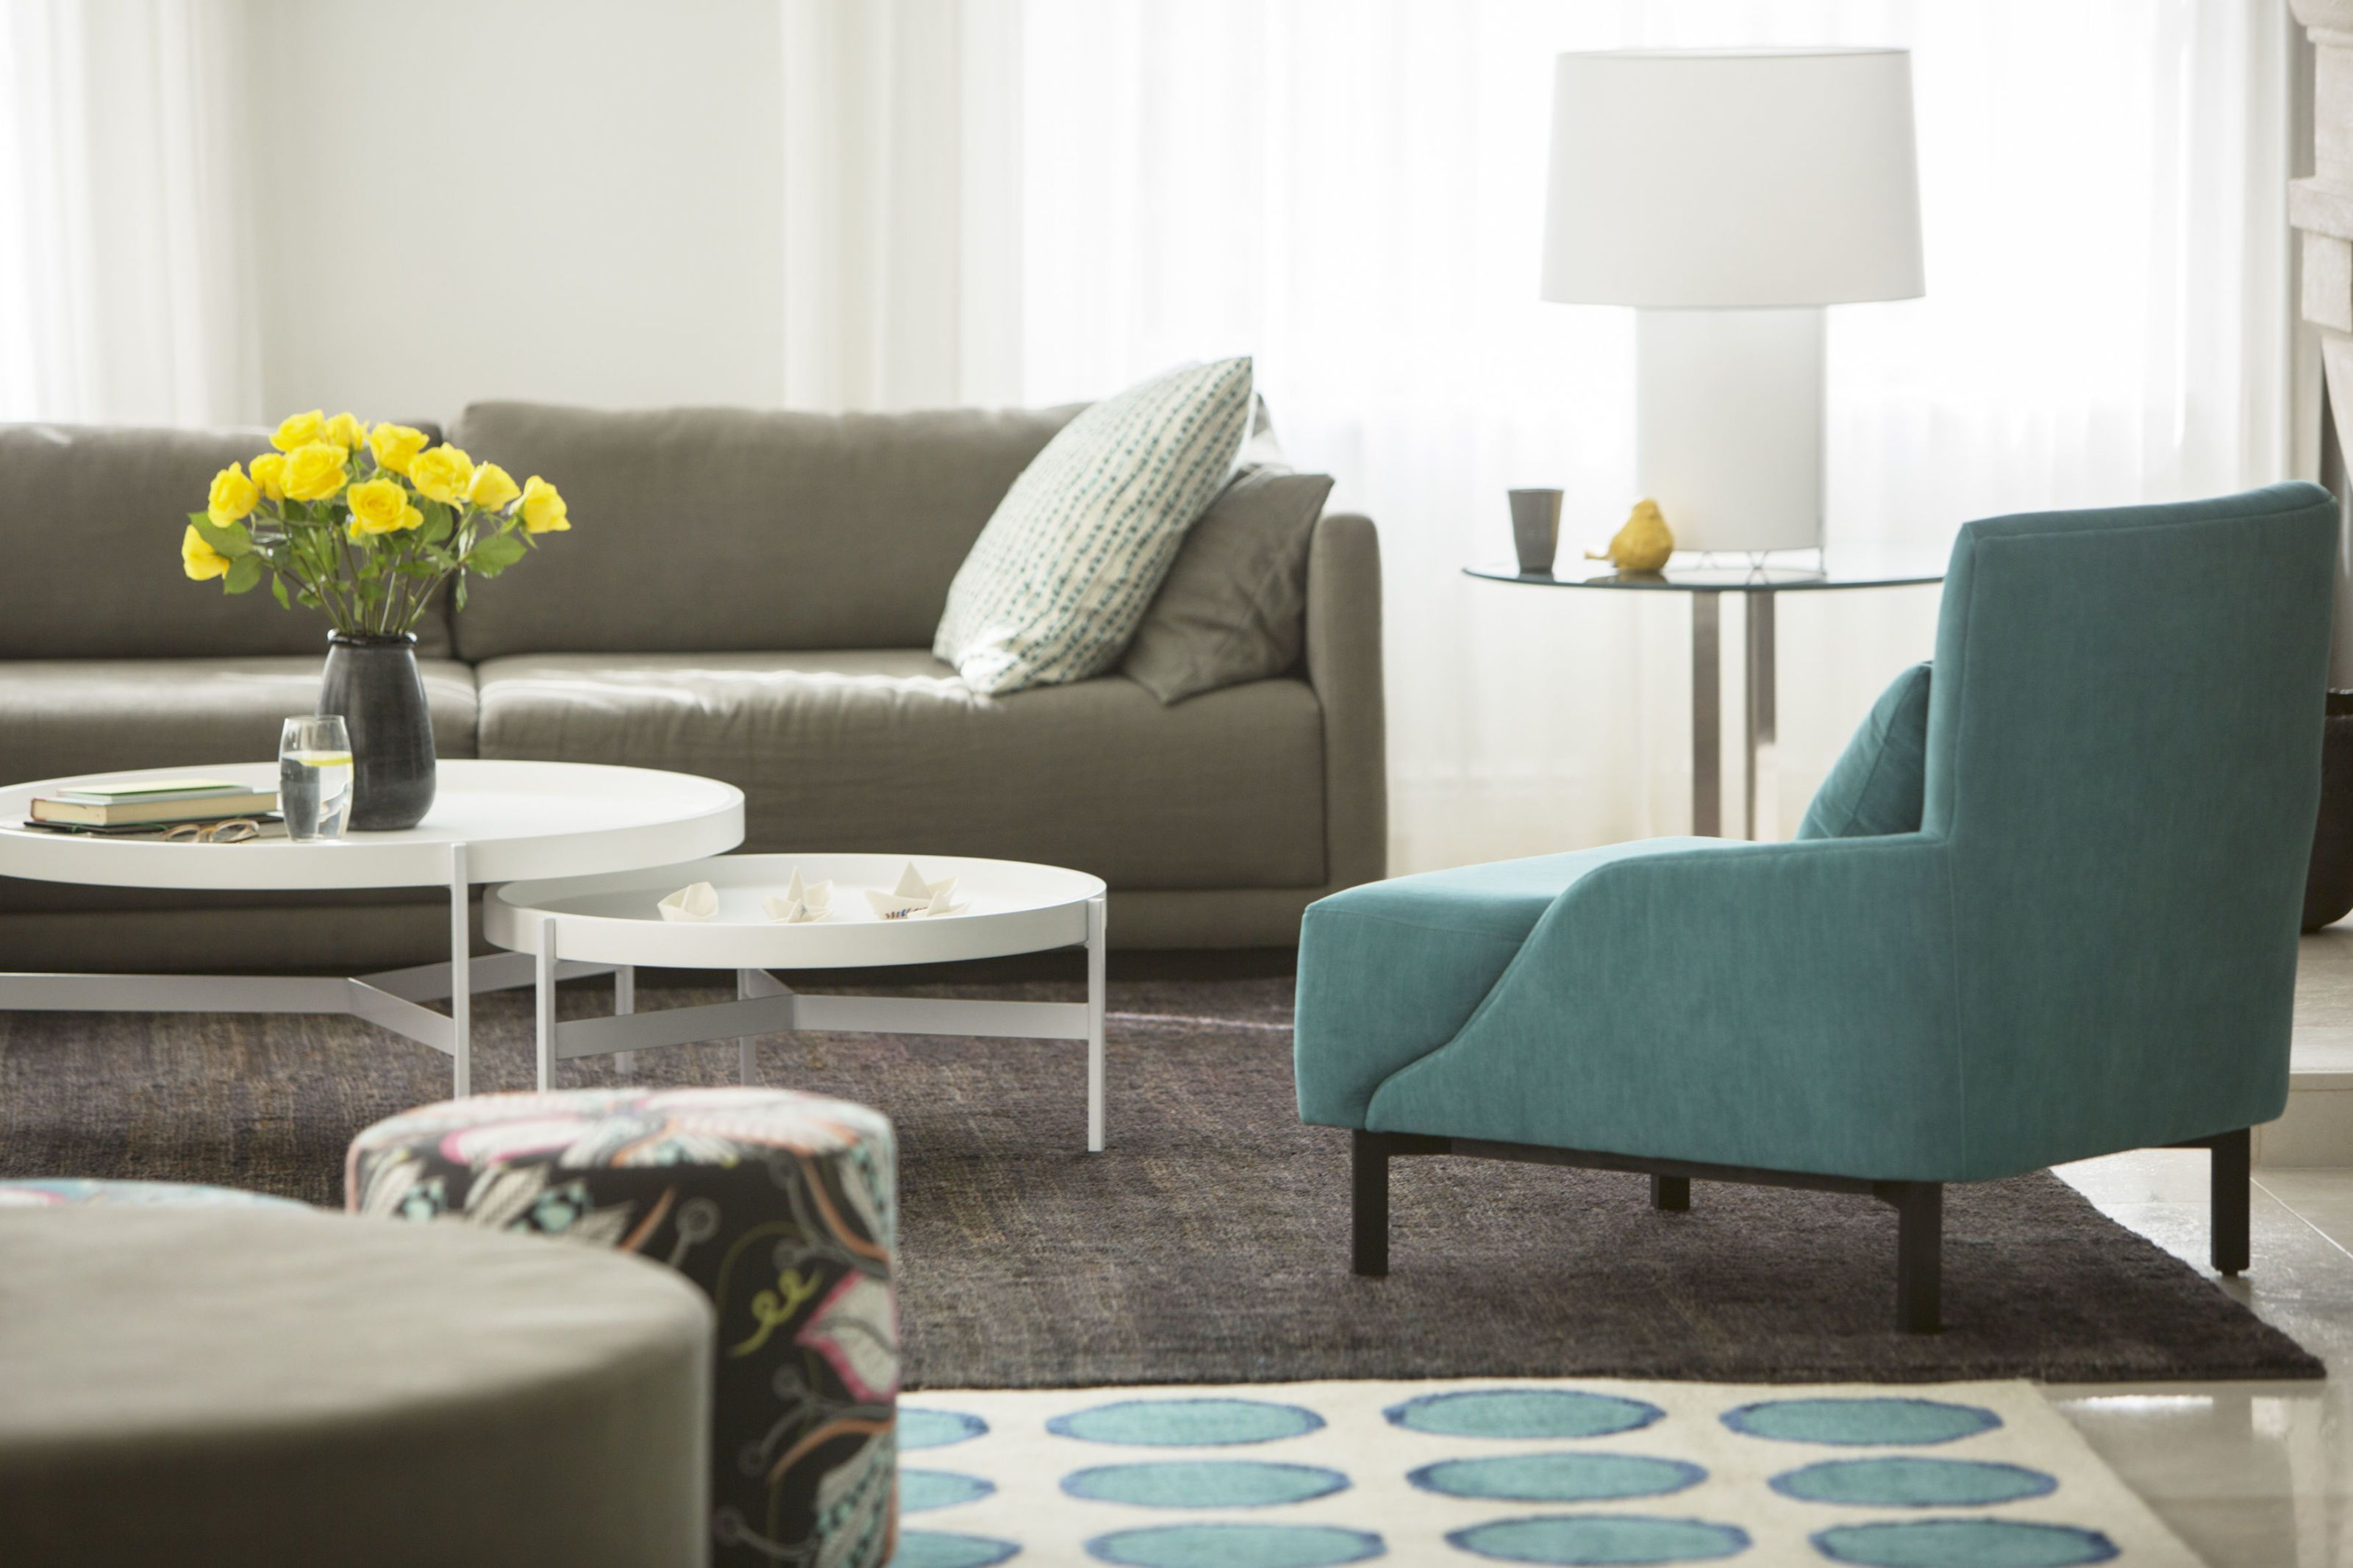 4 living room layout ideas how to arrange living room furniture rh elledecor com